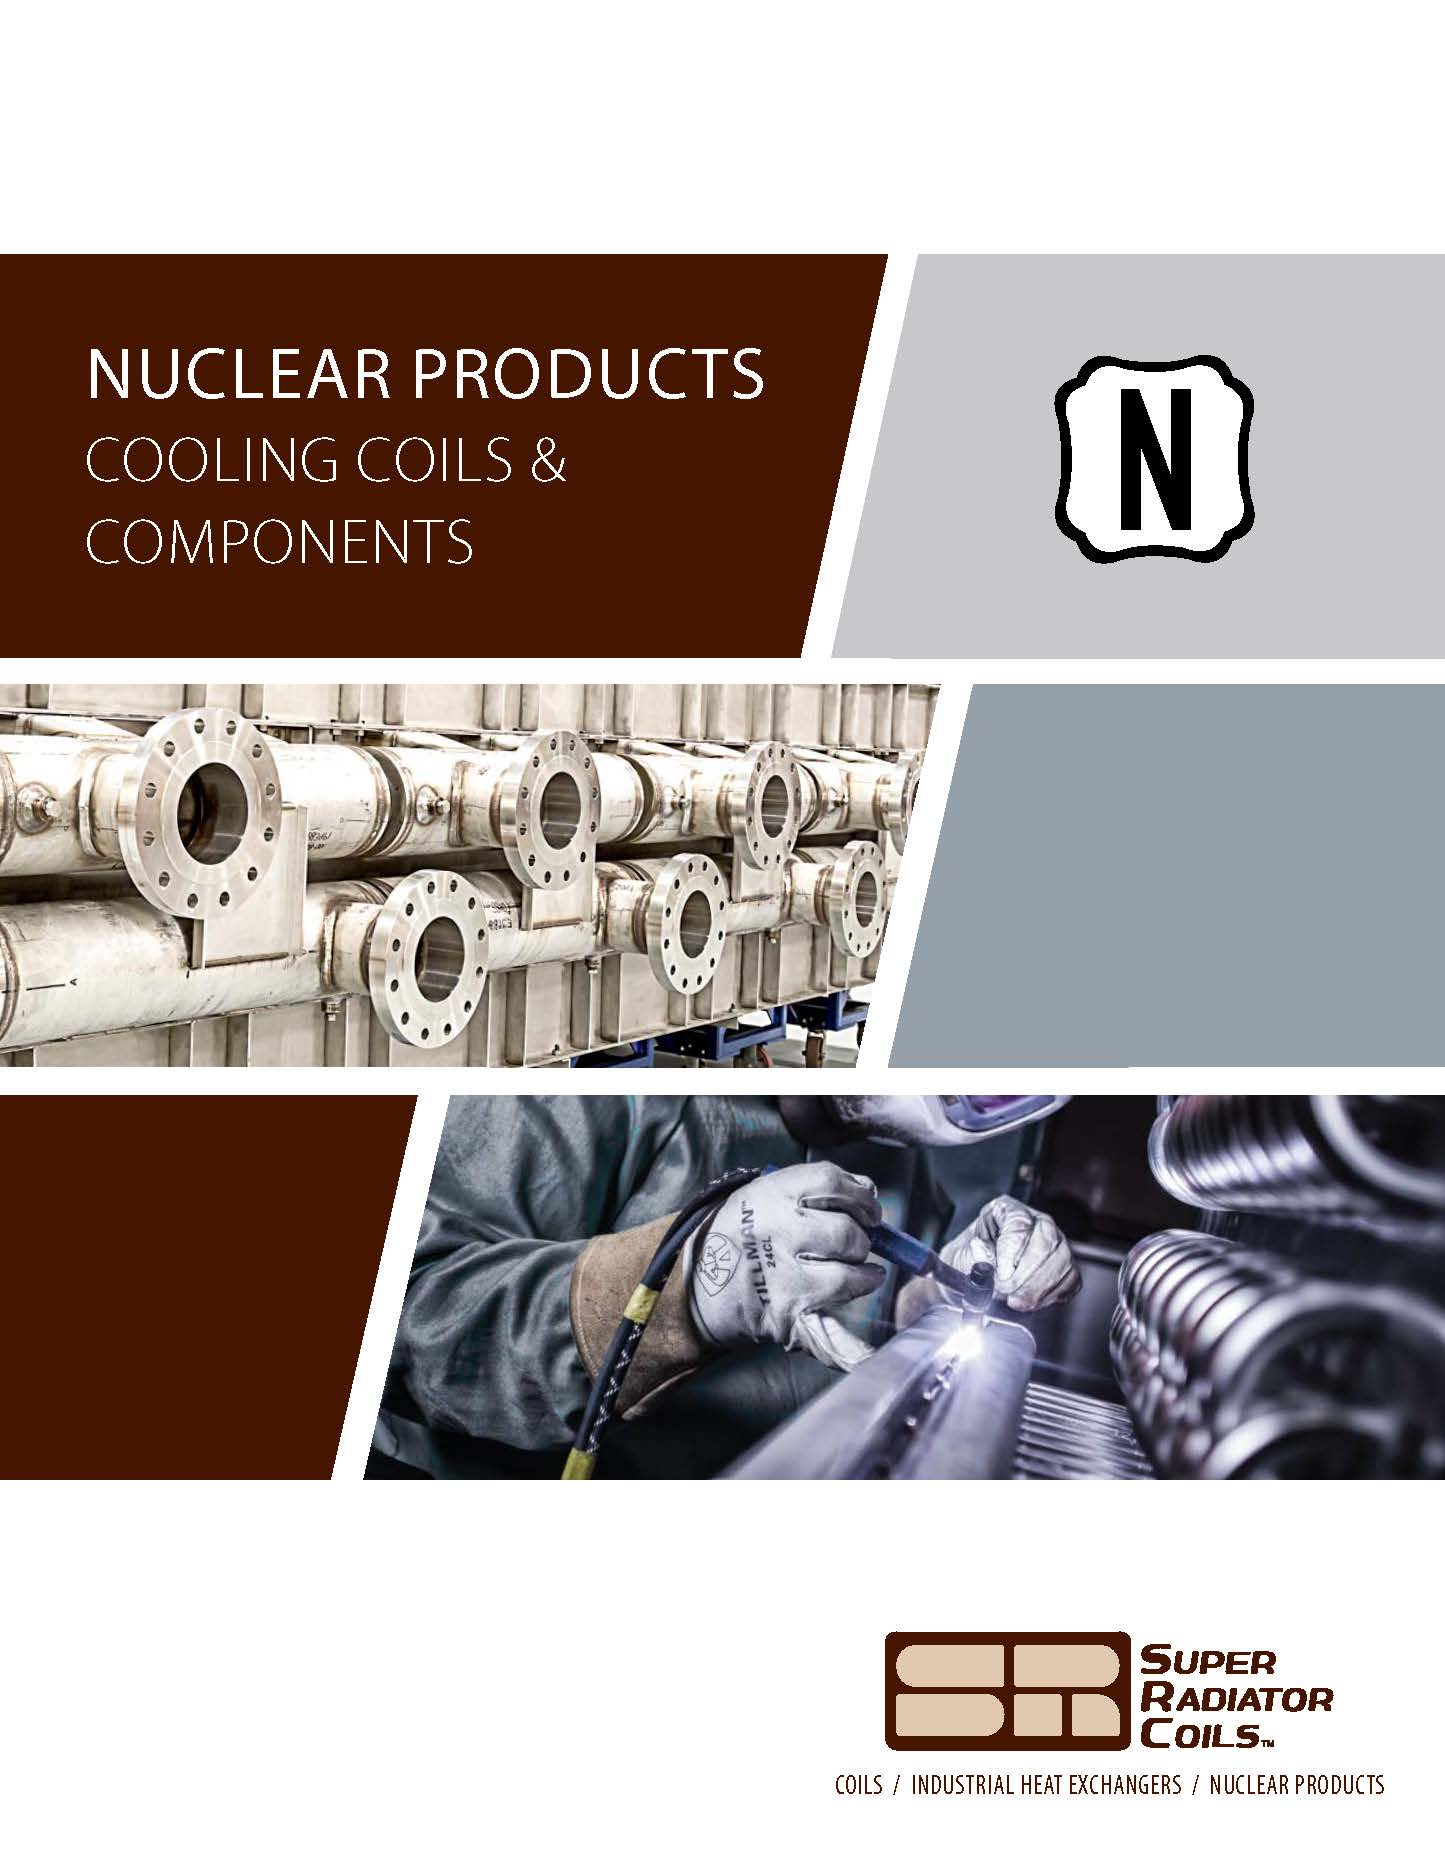 Nuclear Products Brochure